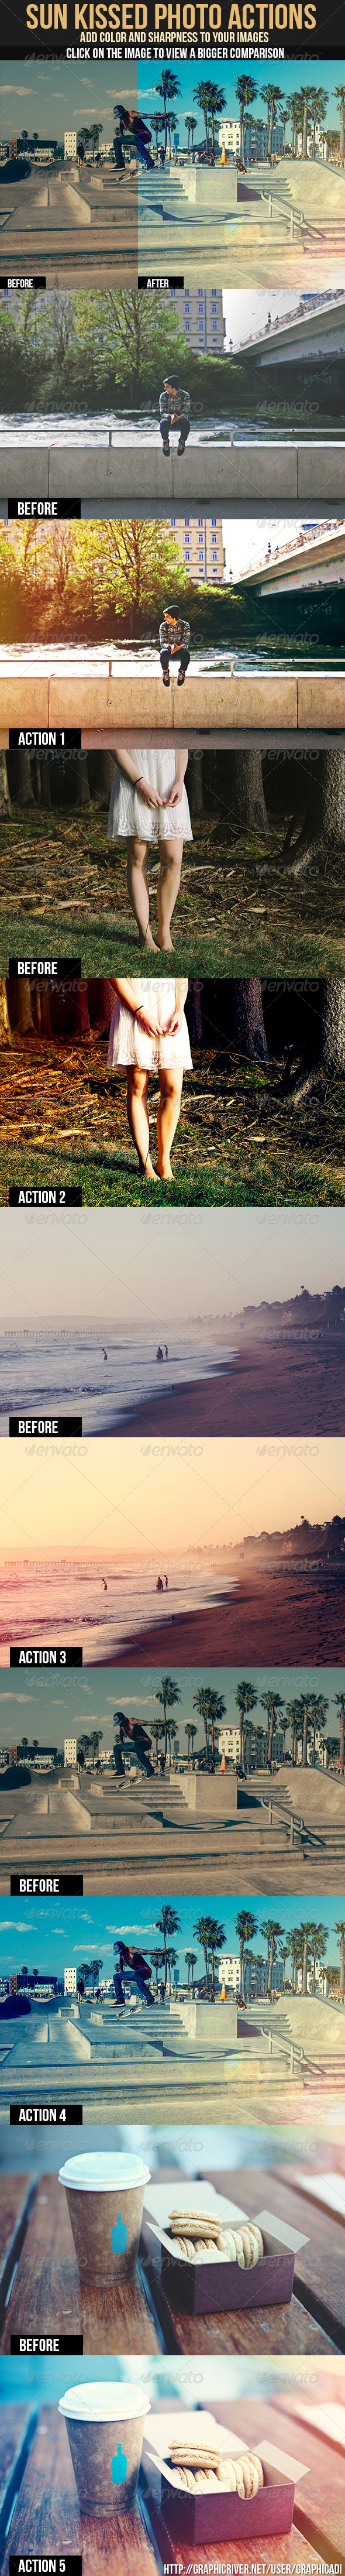 GraphicRiver Sun Kissed Photo Actions 7571513